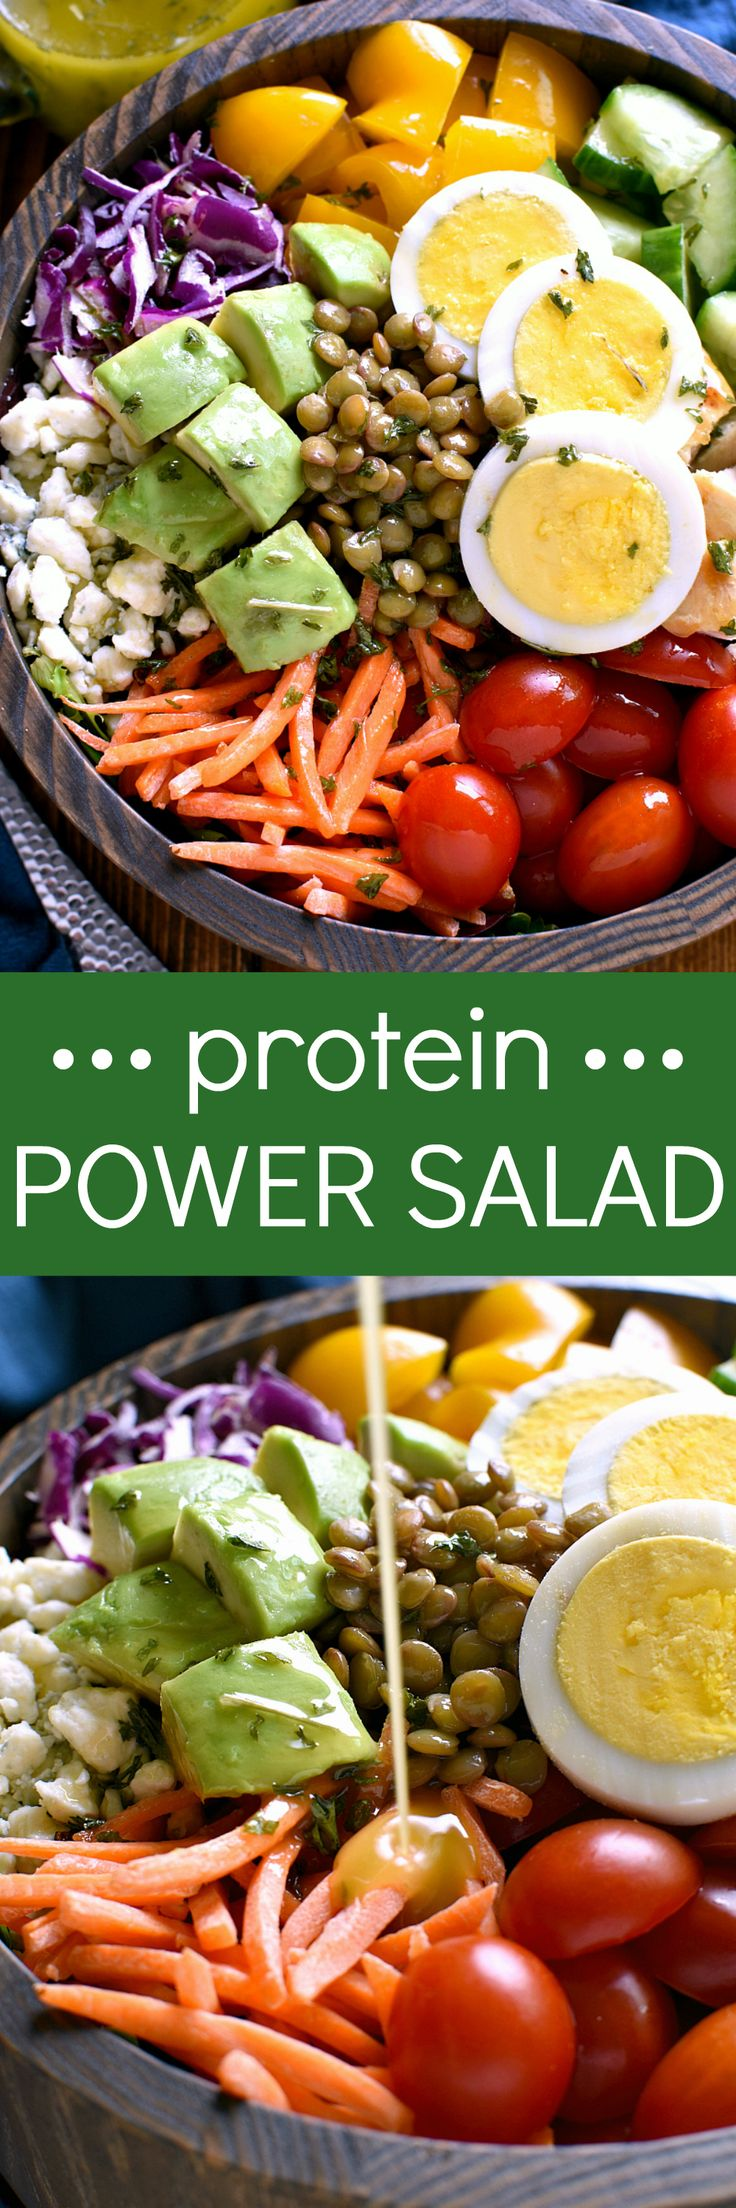 This Protein Power Salad is loaded with veggies and protein and packed with amazing flavor. Perfect for lunch or dinner, this is one salad that is sure to satisfy you all day long! #LoveALentil #SpringCleanse #ad @cdnlentils